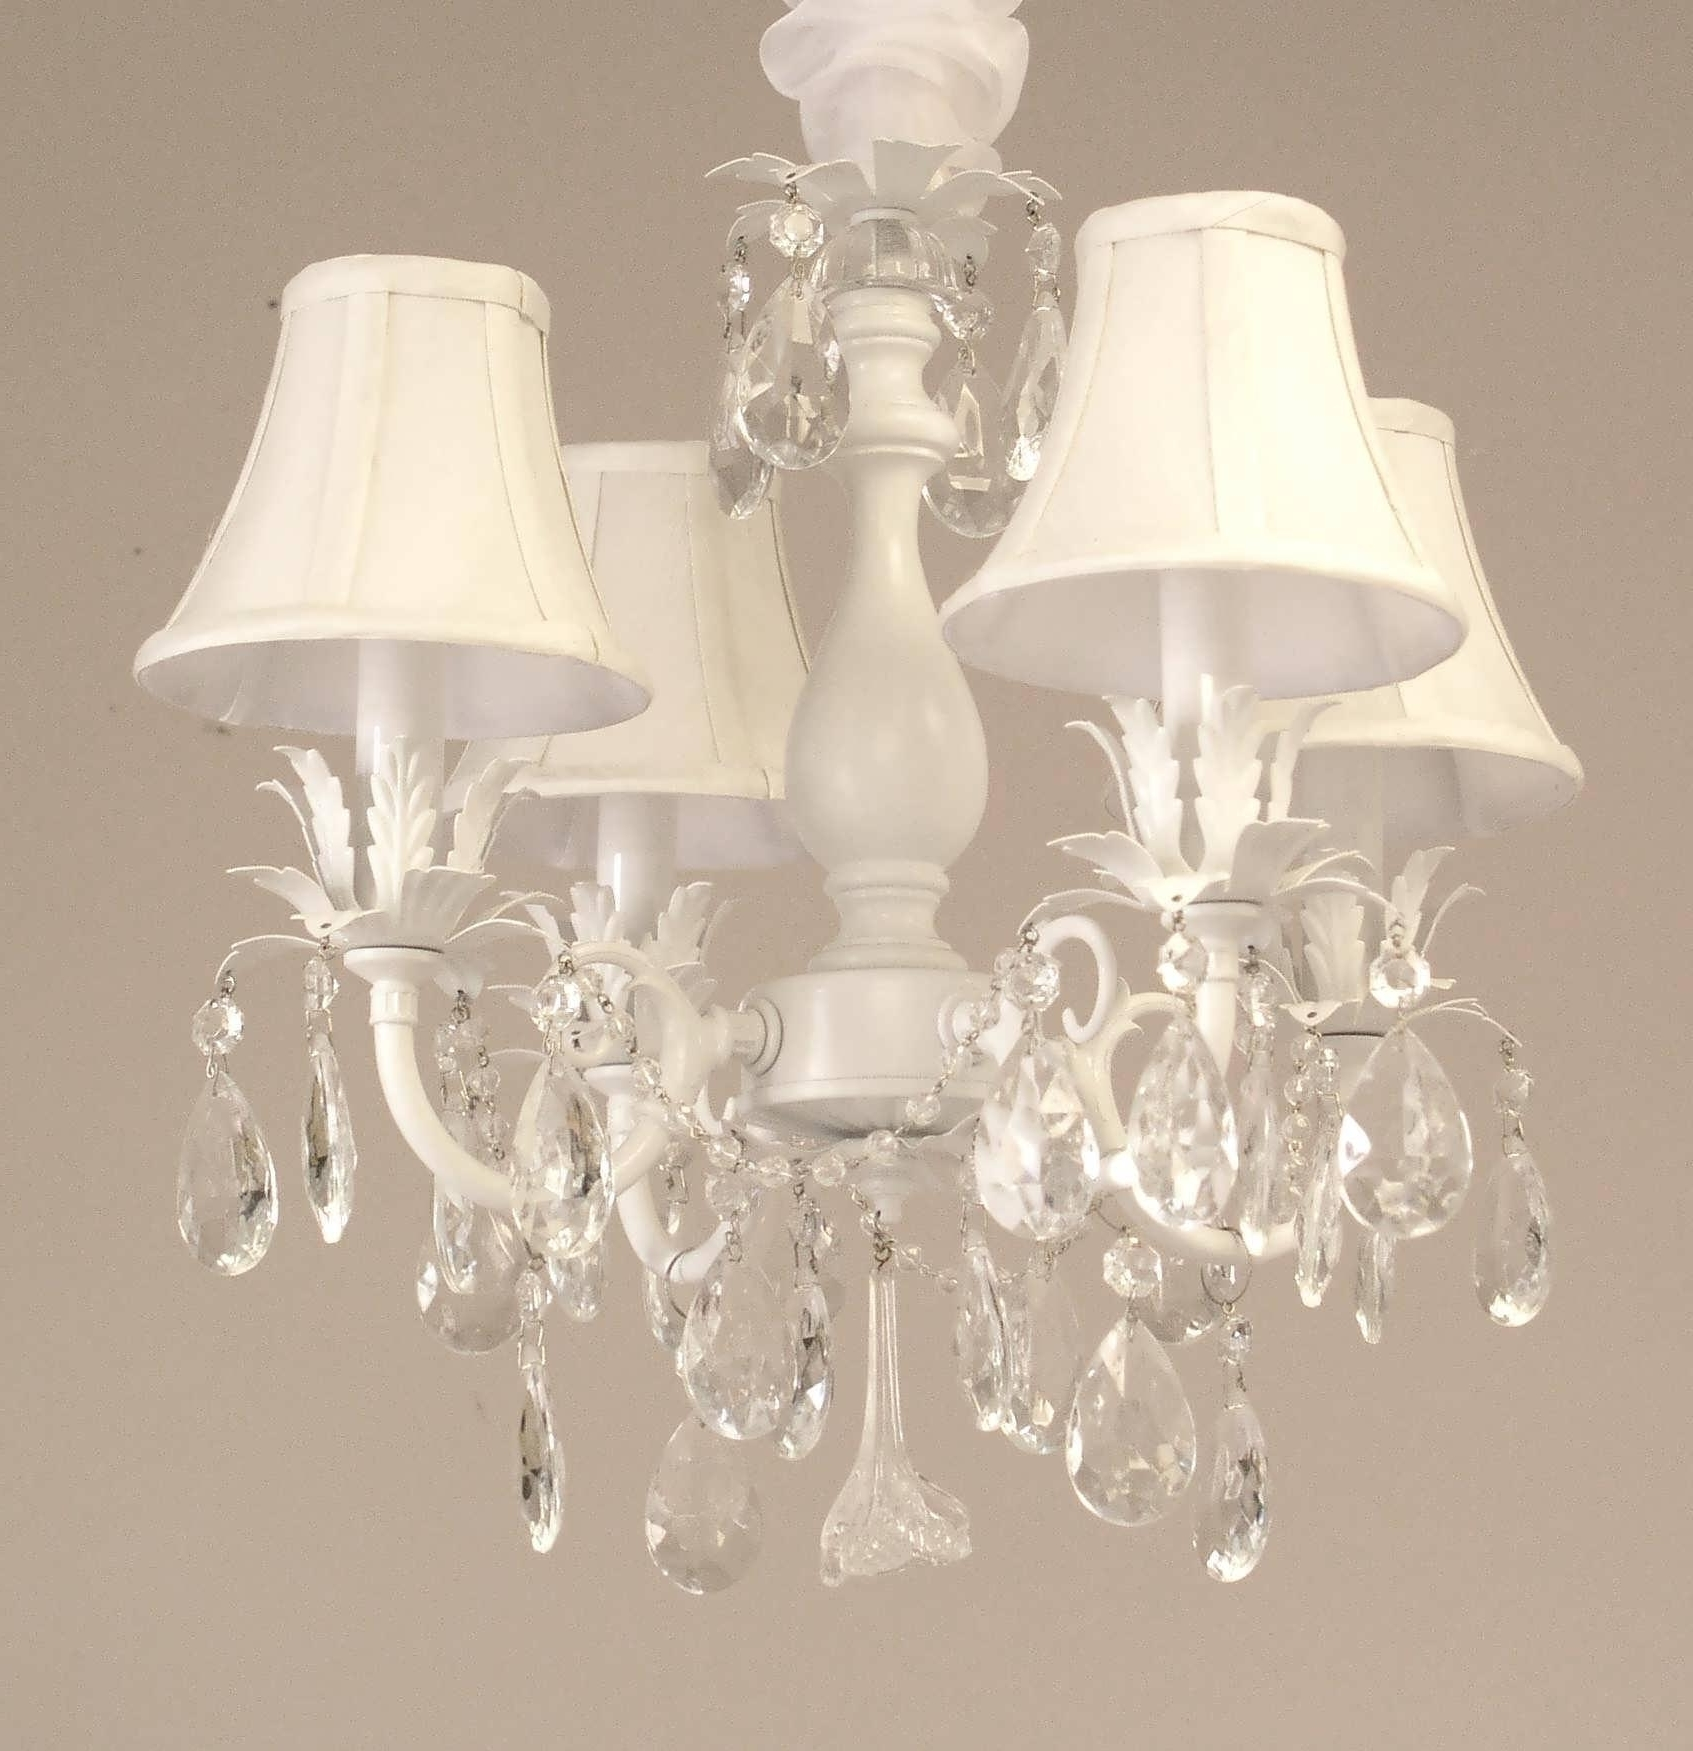 Recent Country Chic Chandelier Intended For Chandeliers : Shabby Chic Chandeliers Luxury Chandeliers Design (View 16 of 20)